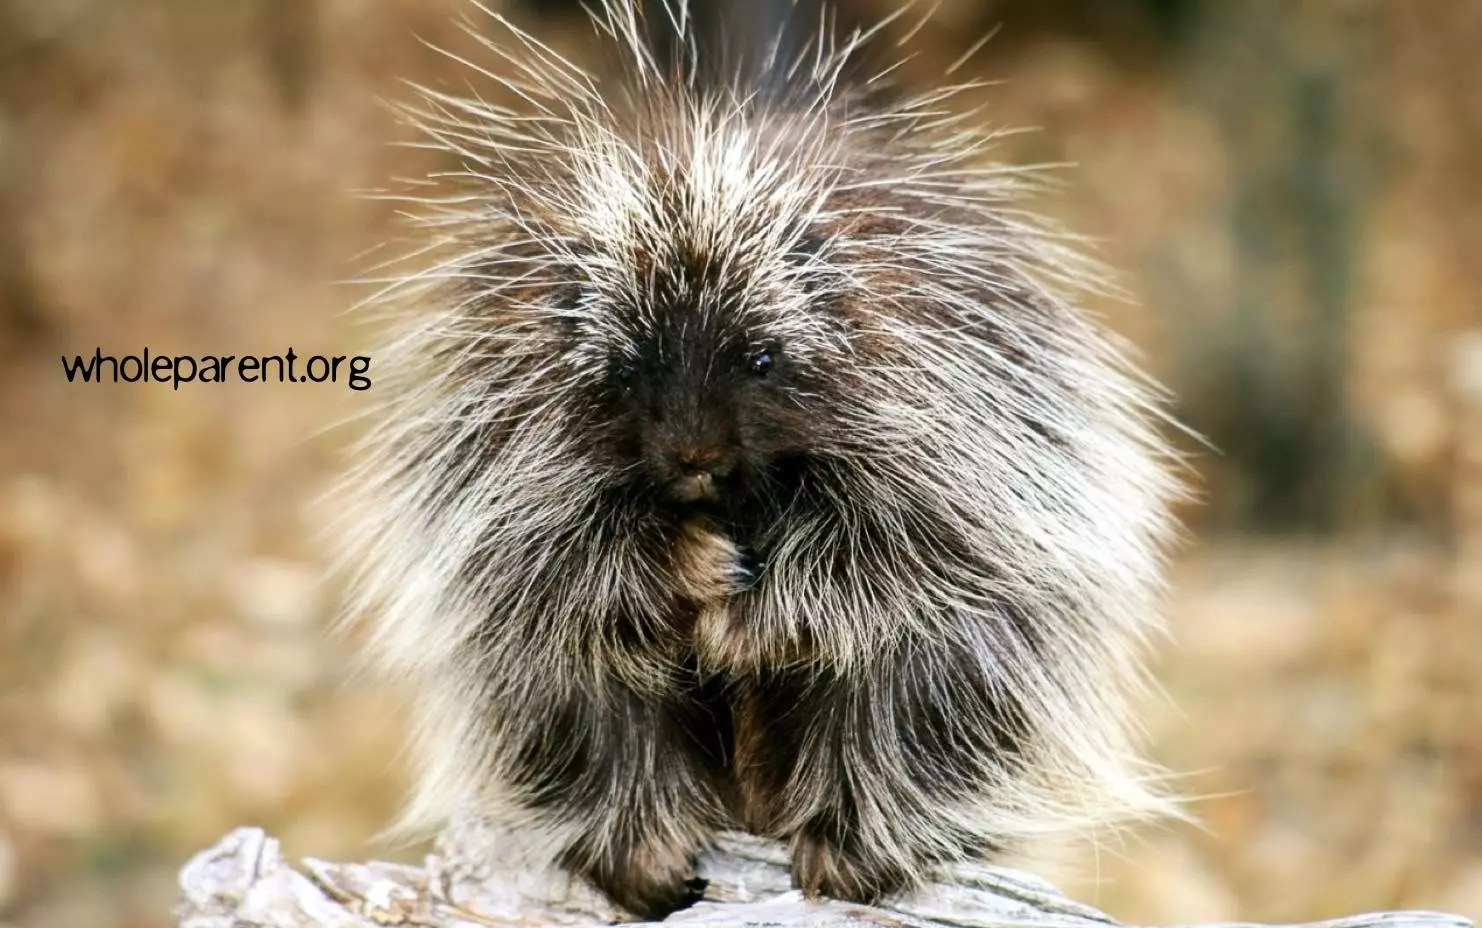 My Porcupine Period: Expressing My Dissatisfaction In My Marriage